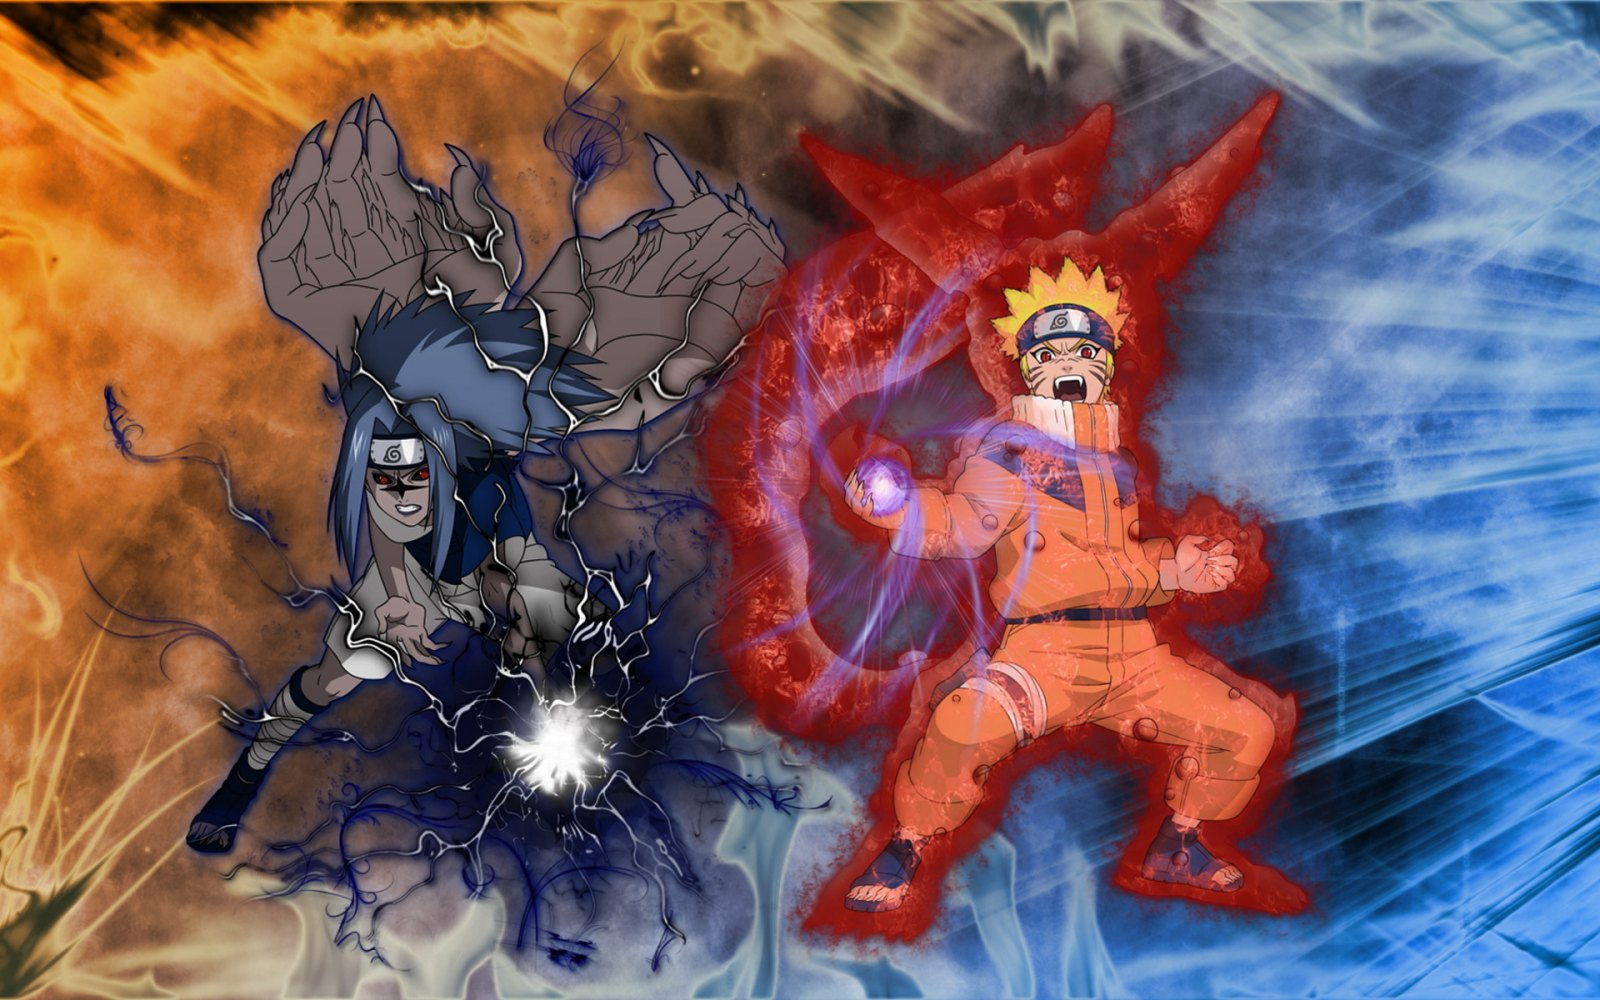 Naruto And Sasuke Wallpapers Posted By Zoey Peltier